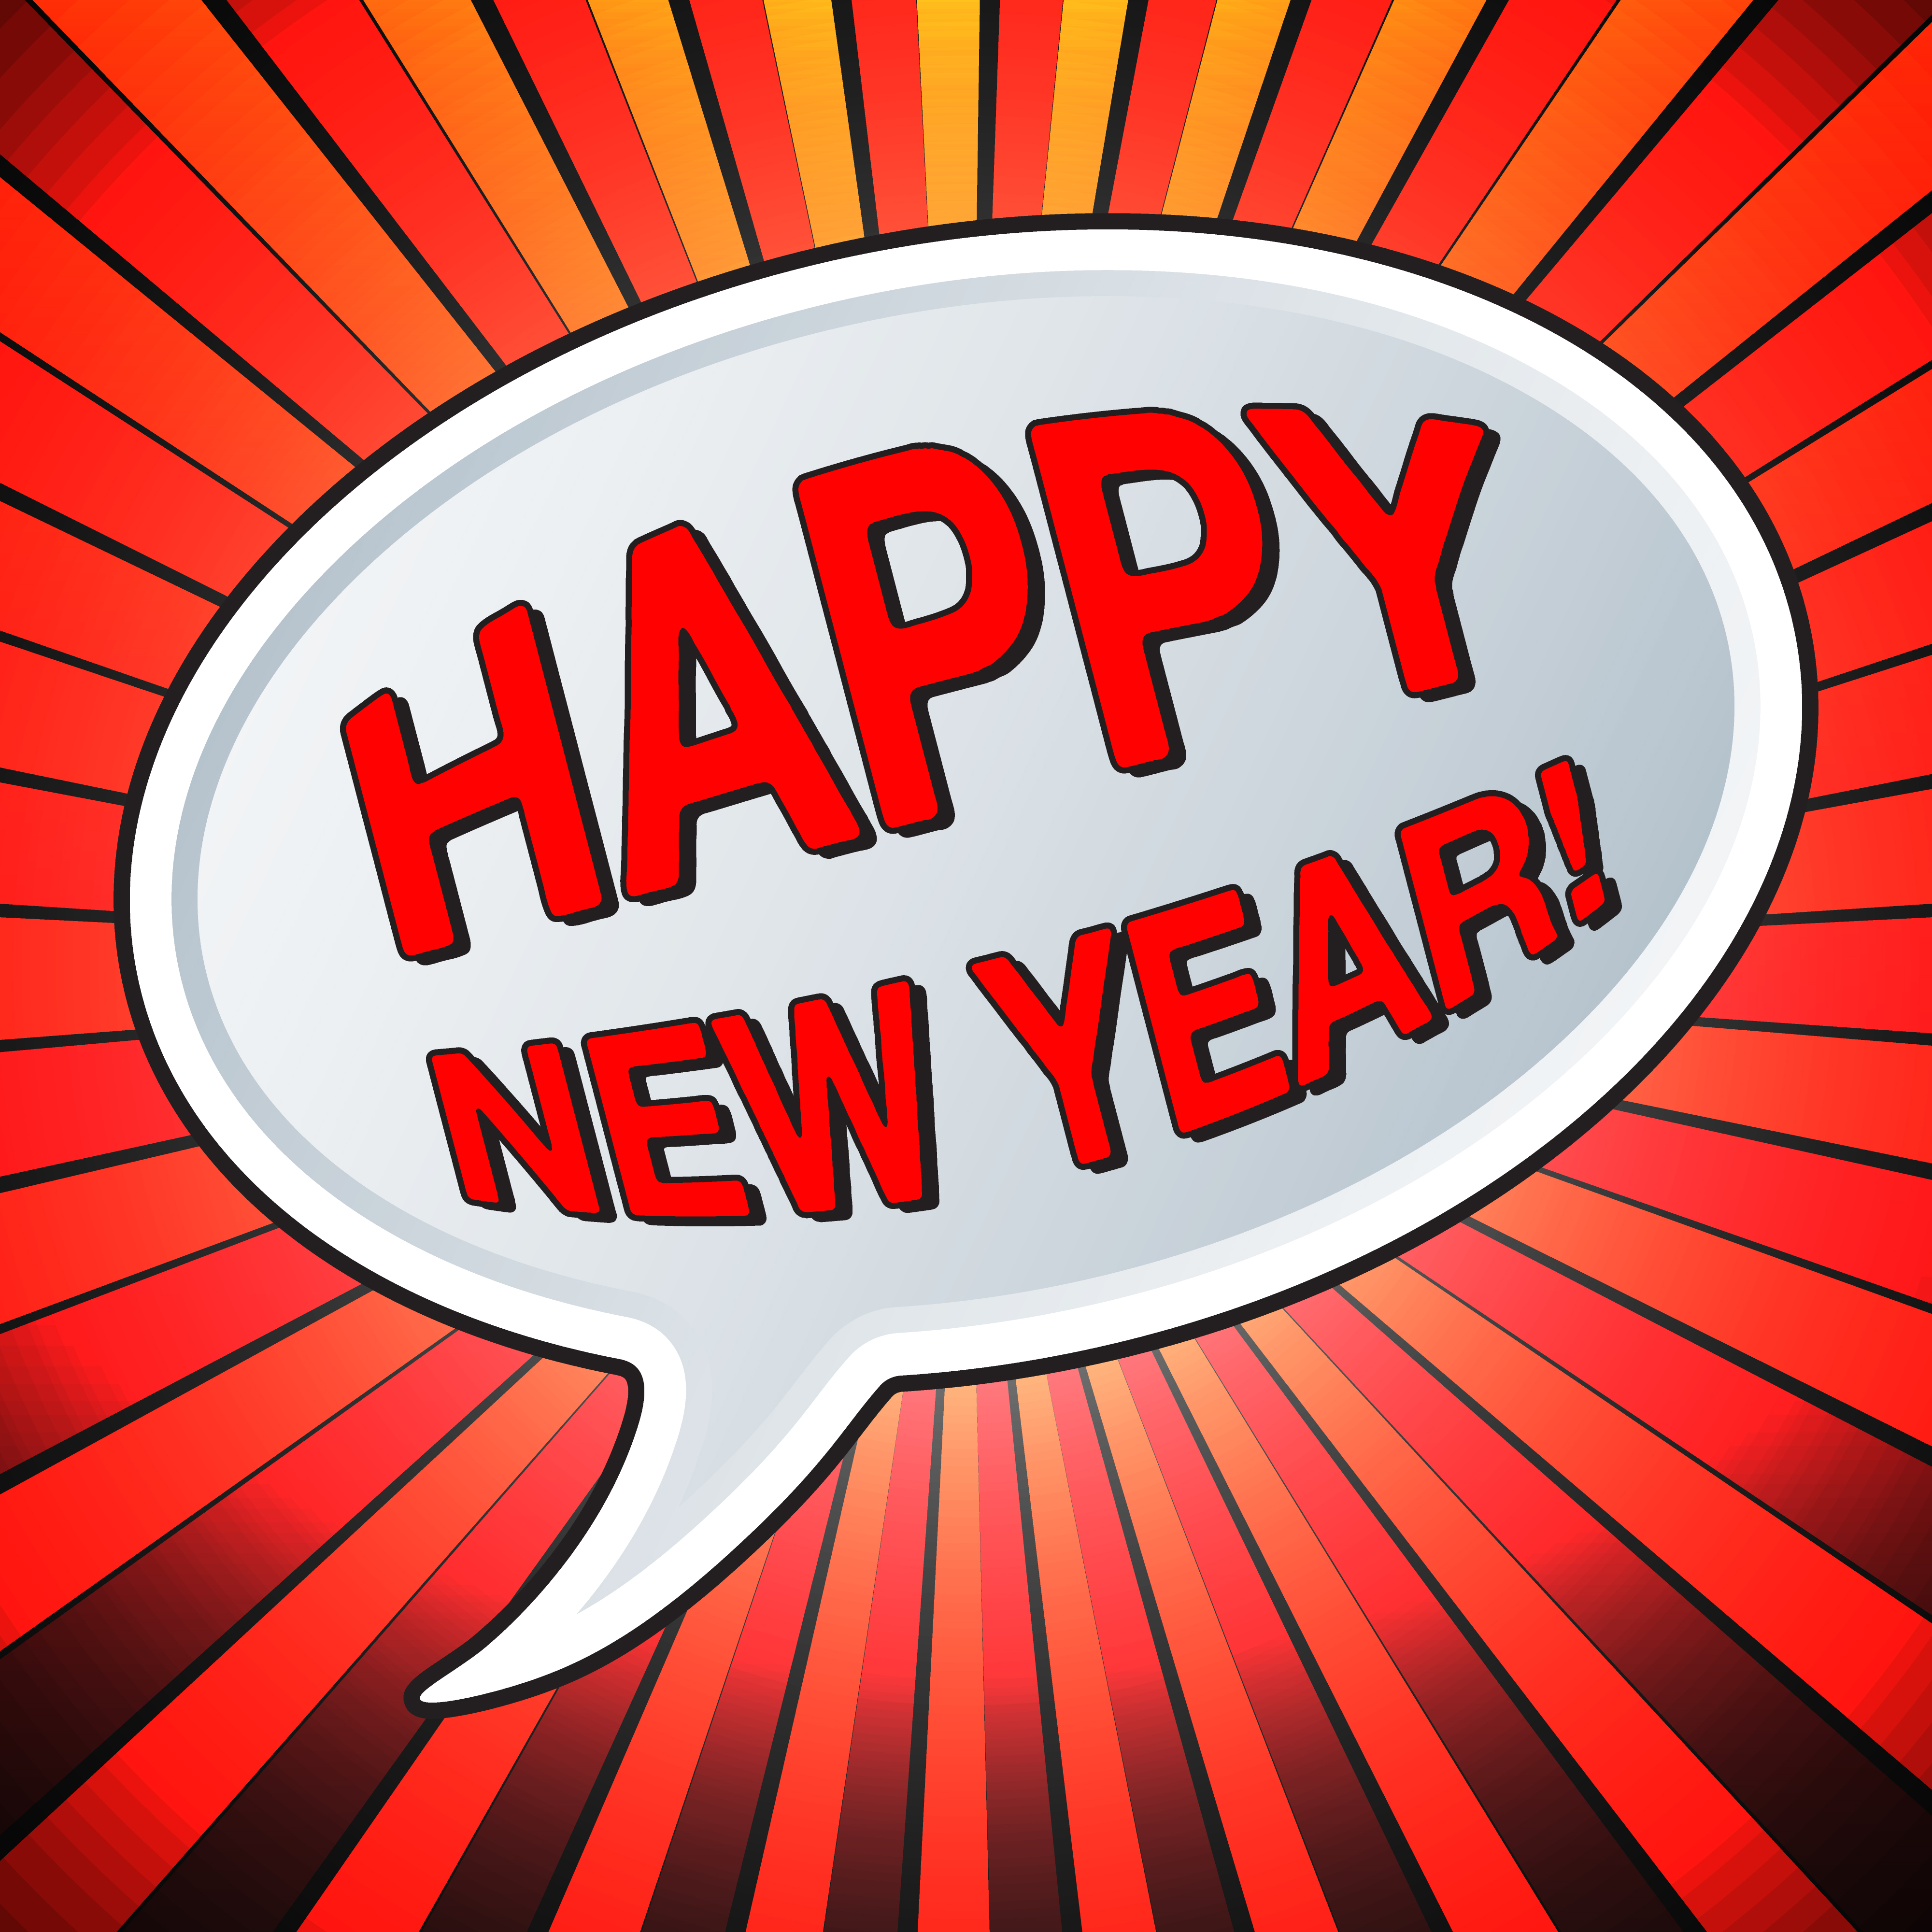 Happy new year - Download Free Vectors, Clipart Graphics ...